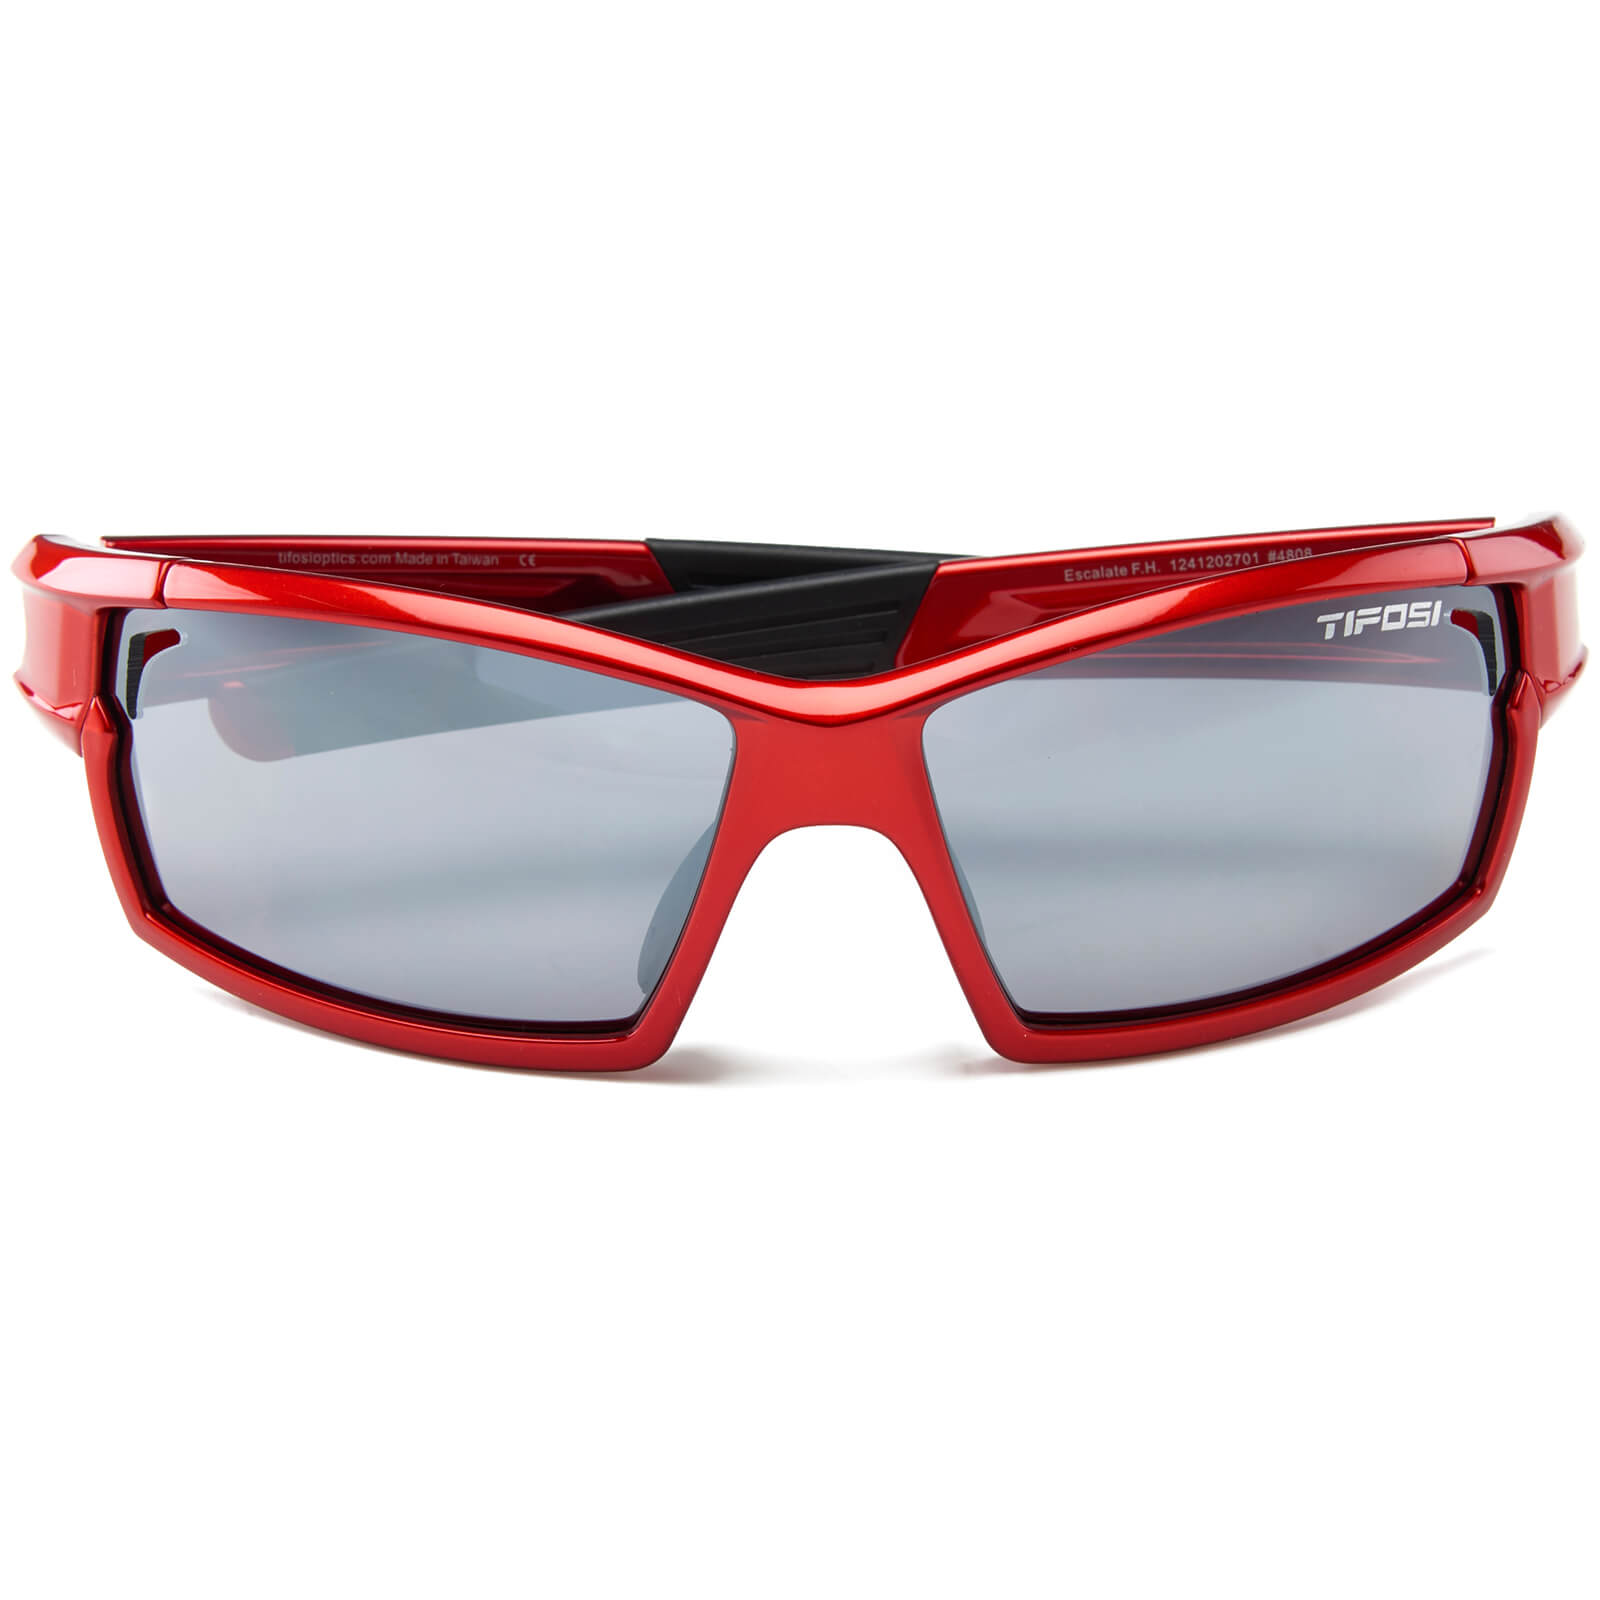 Tifosi Pro Escalate FH Interchangeable Sunglasses - Metallic Red/Clear